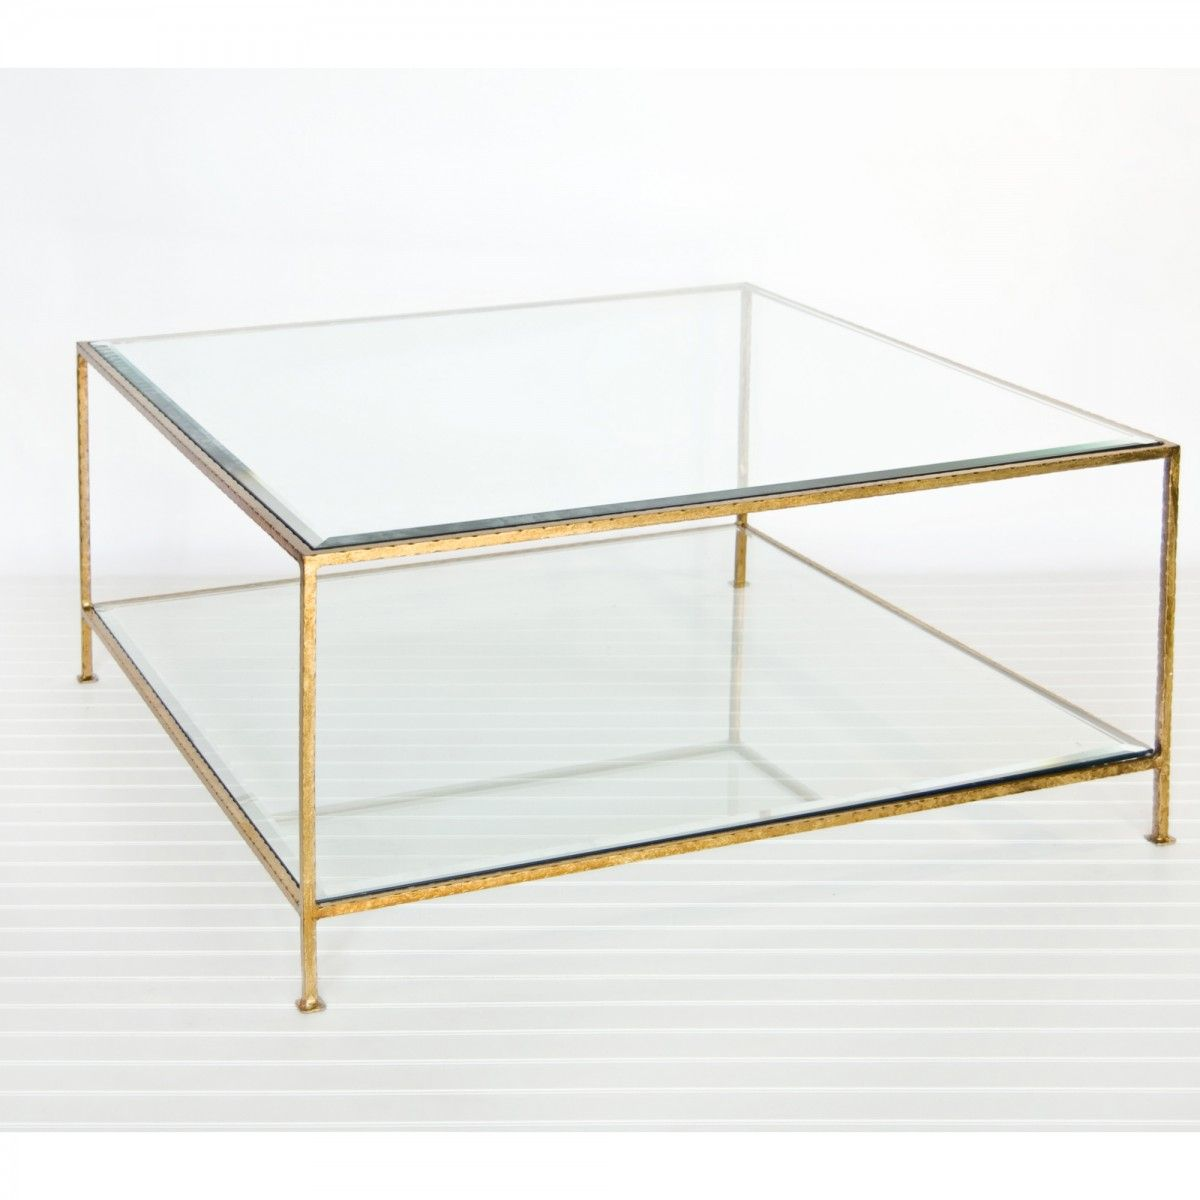 Worlds Away Quadro Coffee Table Hammered Gold Leaf Candelabra